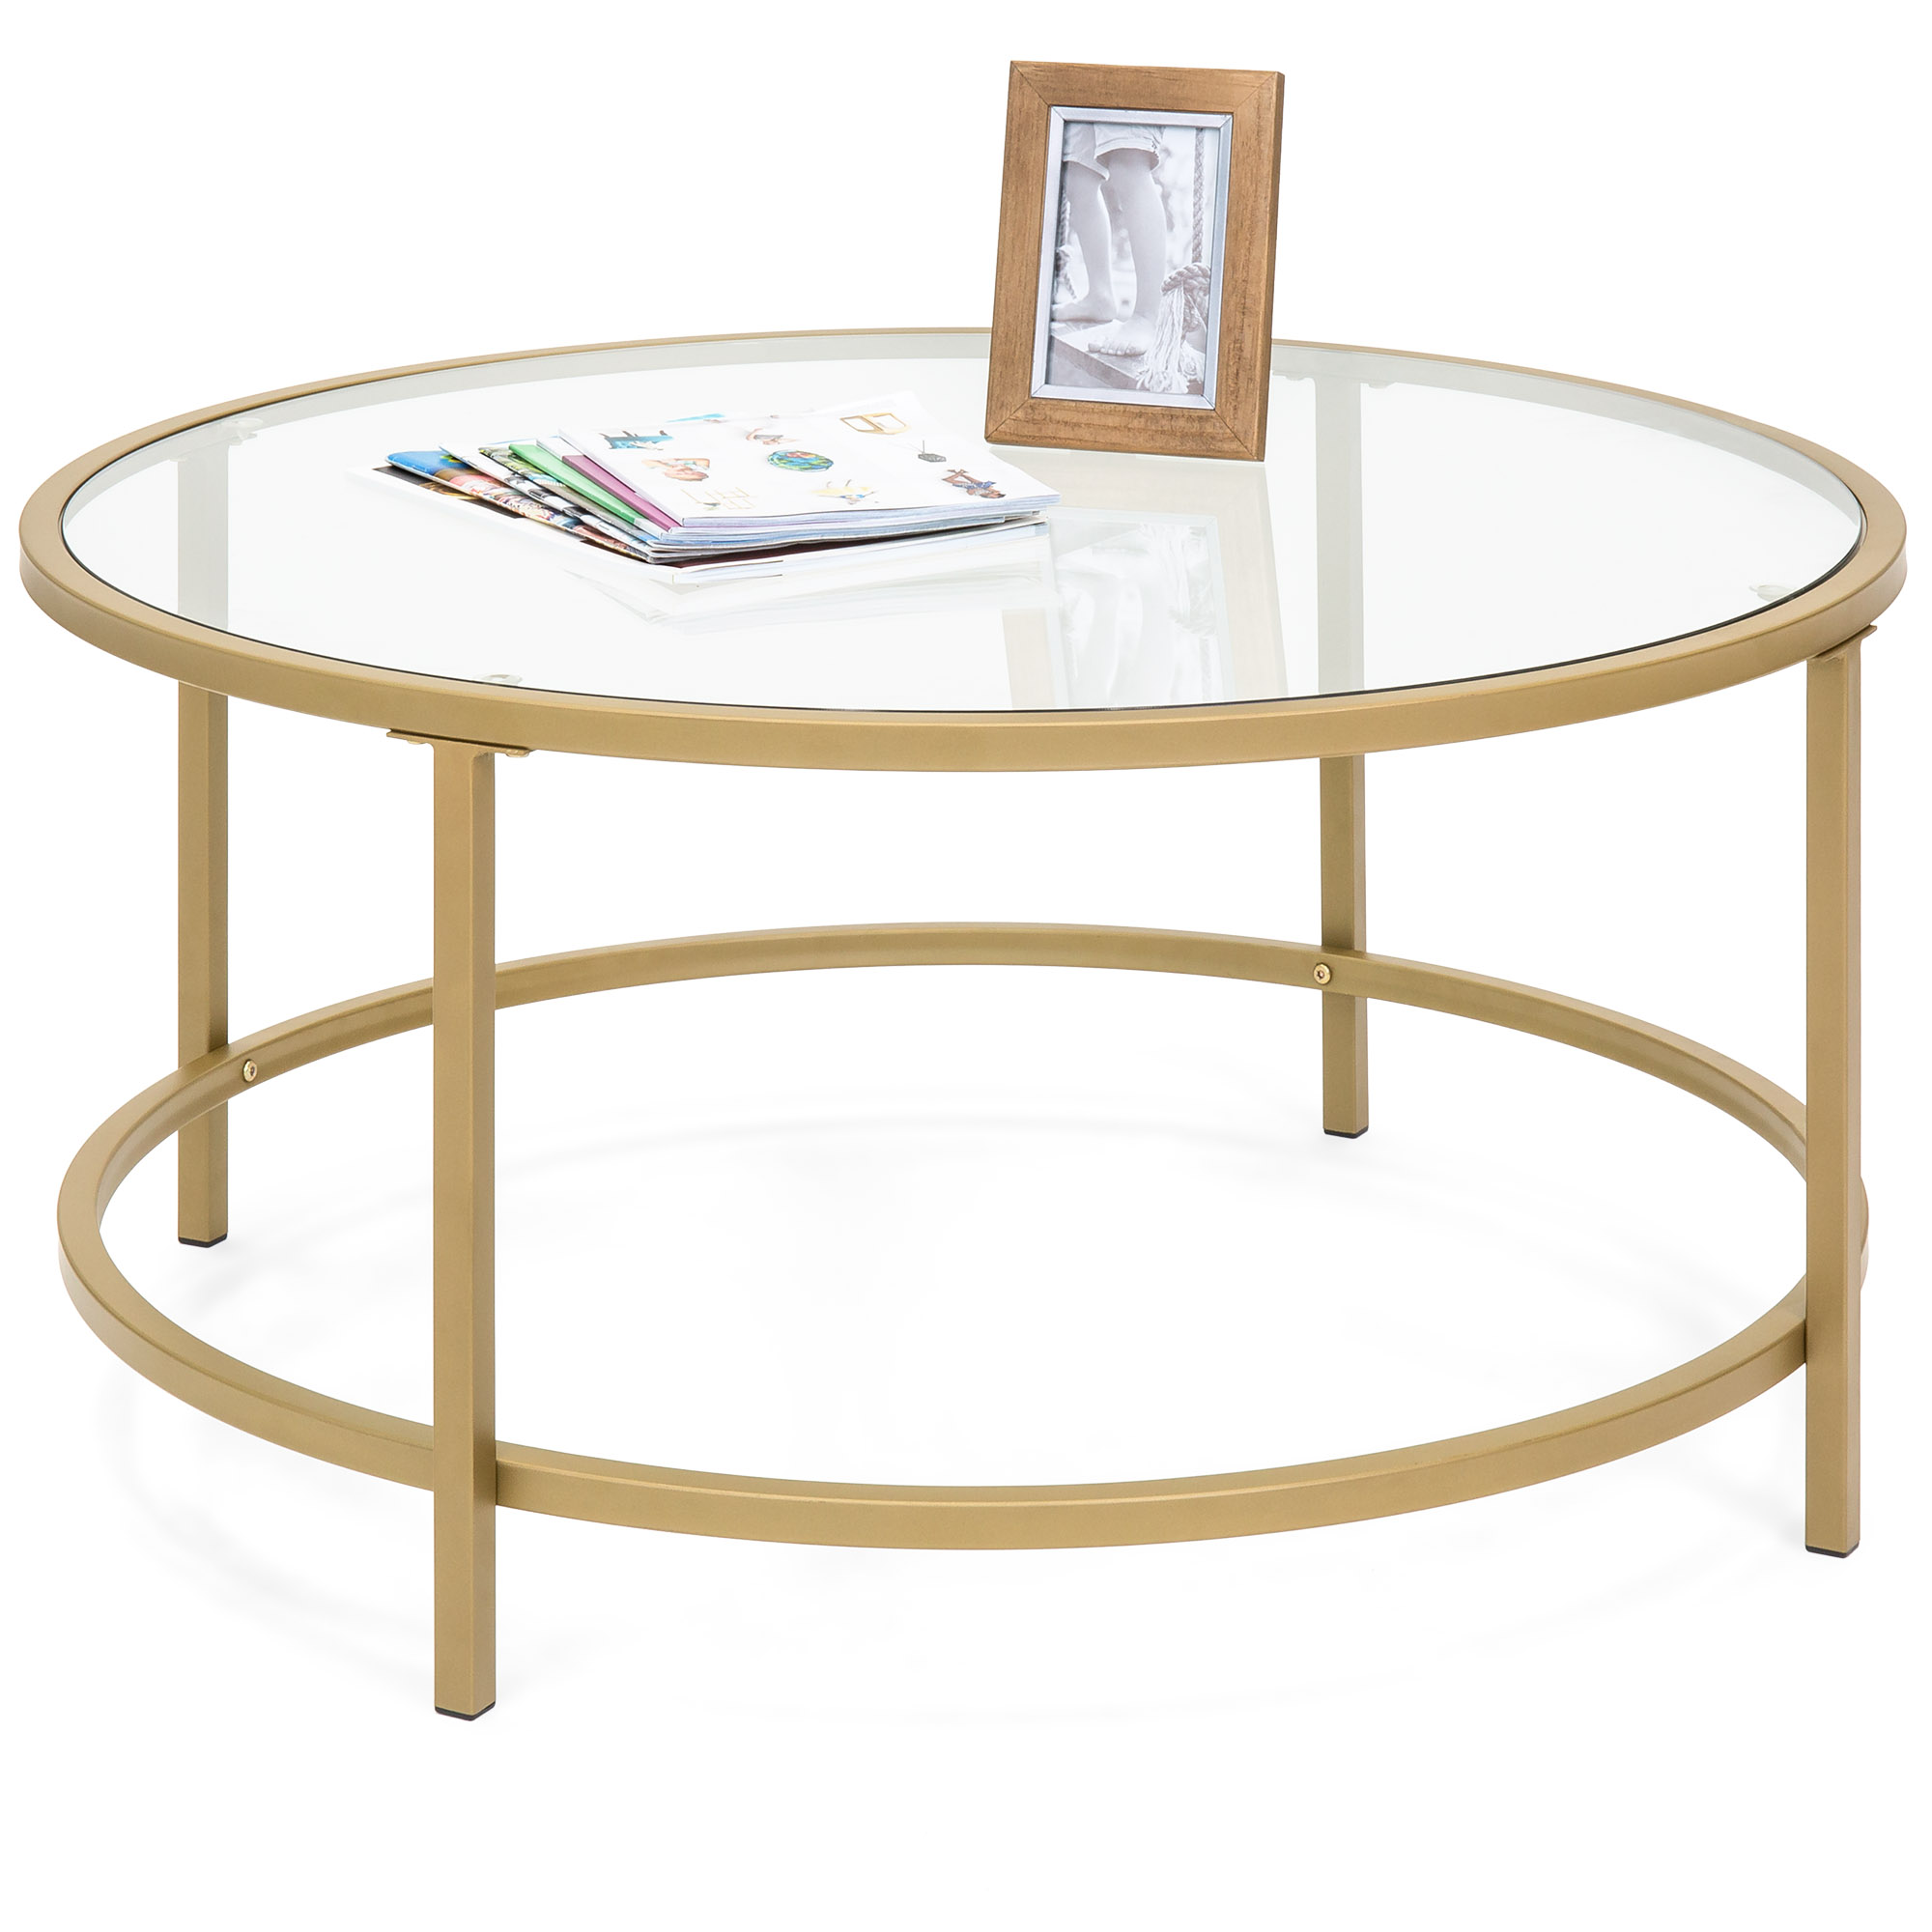 Best Choice Products 36in Round Tempered Glass Coffee Table w/ Satin Gold Trim for Home, Living Room, Dining Room